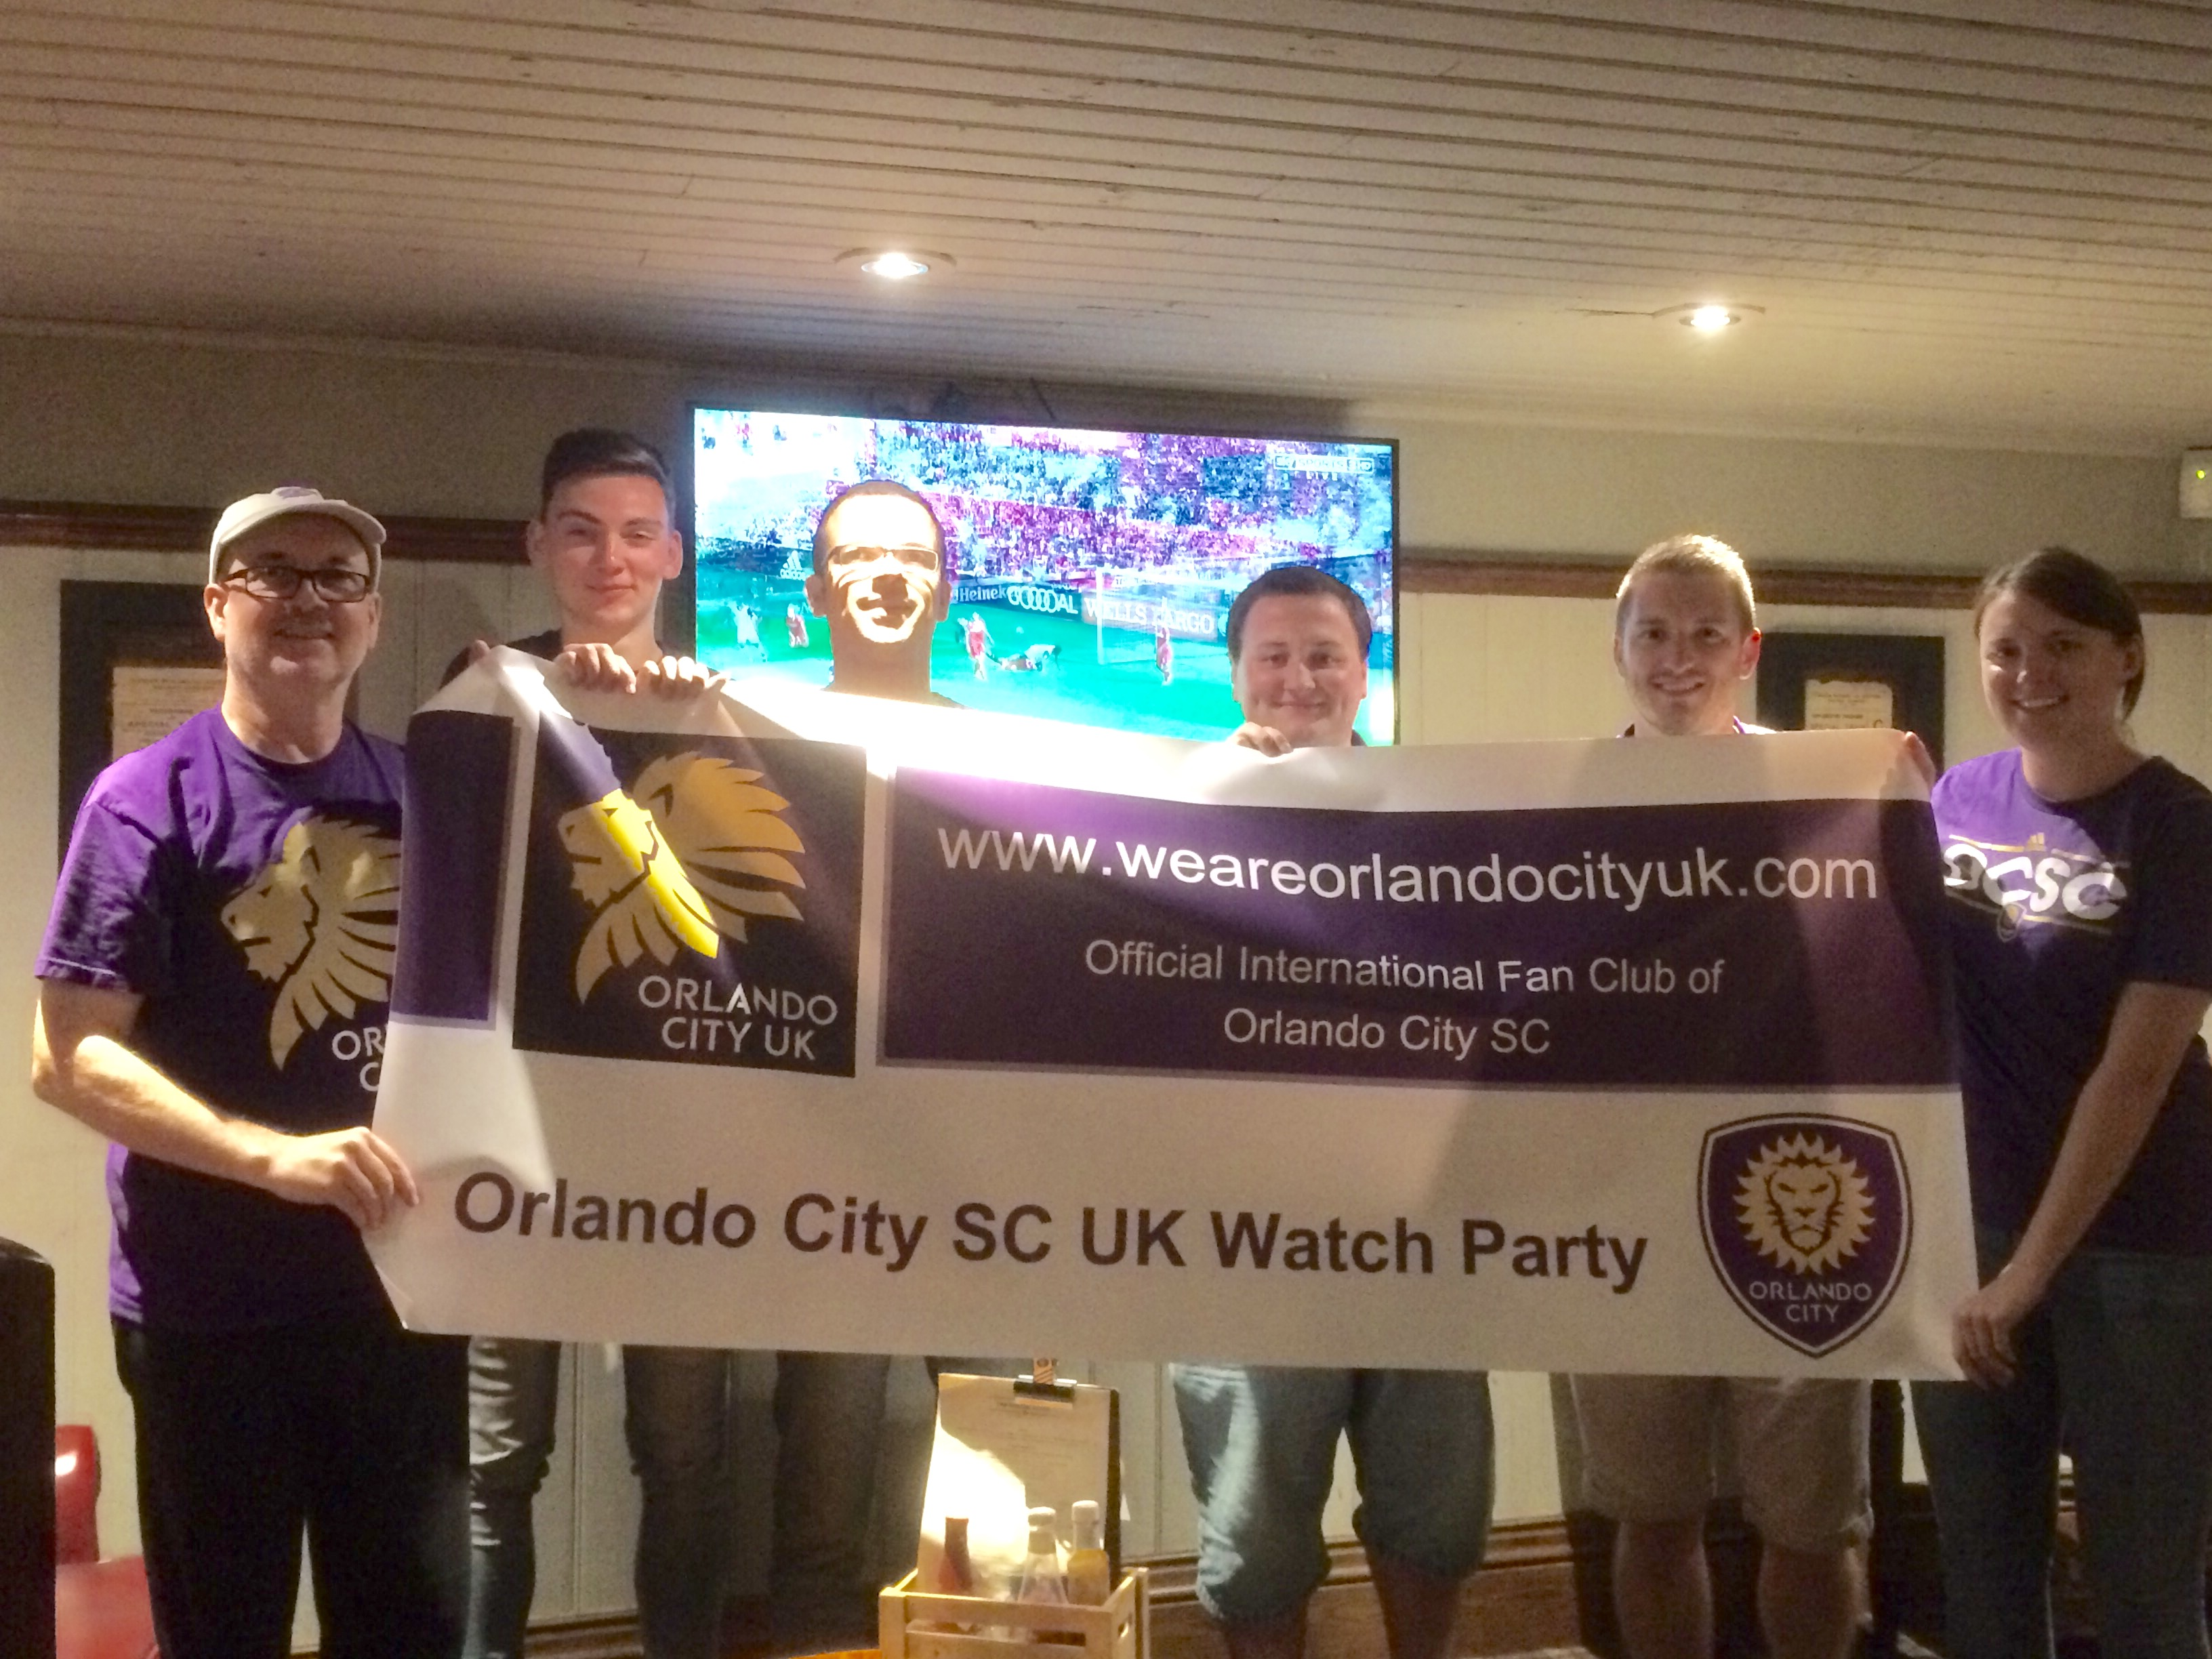 Chicago Fire vs Orlando City SC Watch Party - 14.08.2016 (2)